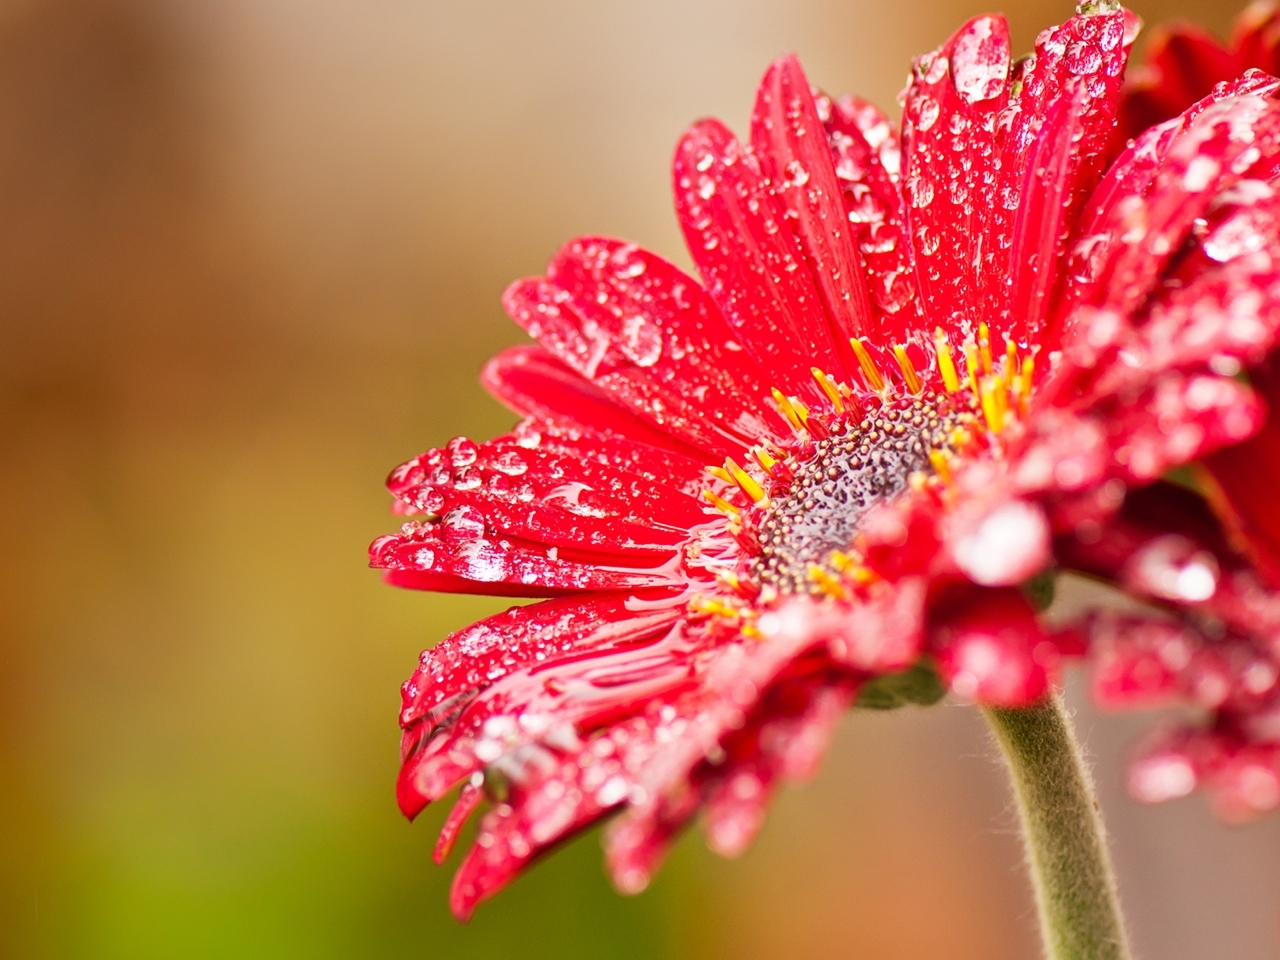 25529 download wallpaper Plants, Flowers, Drops screensavers and pictures for free